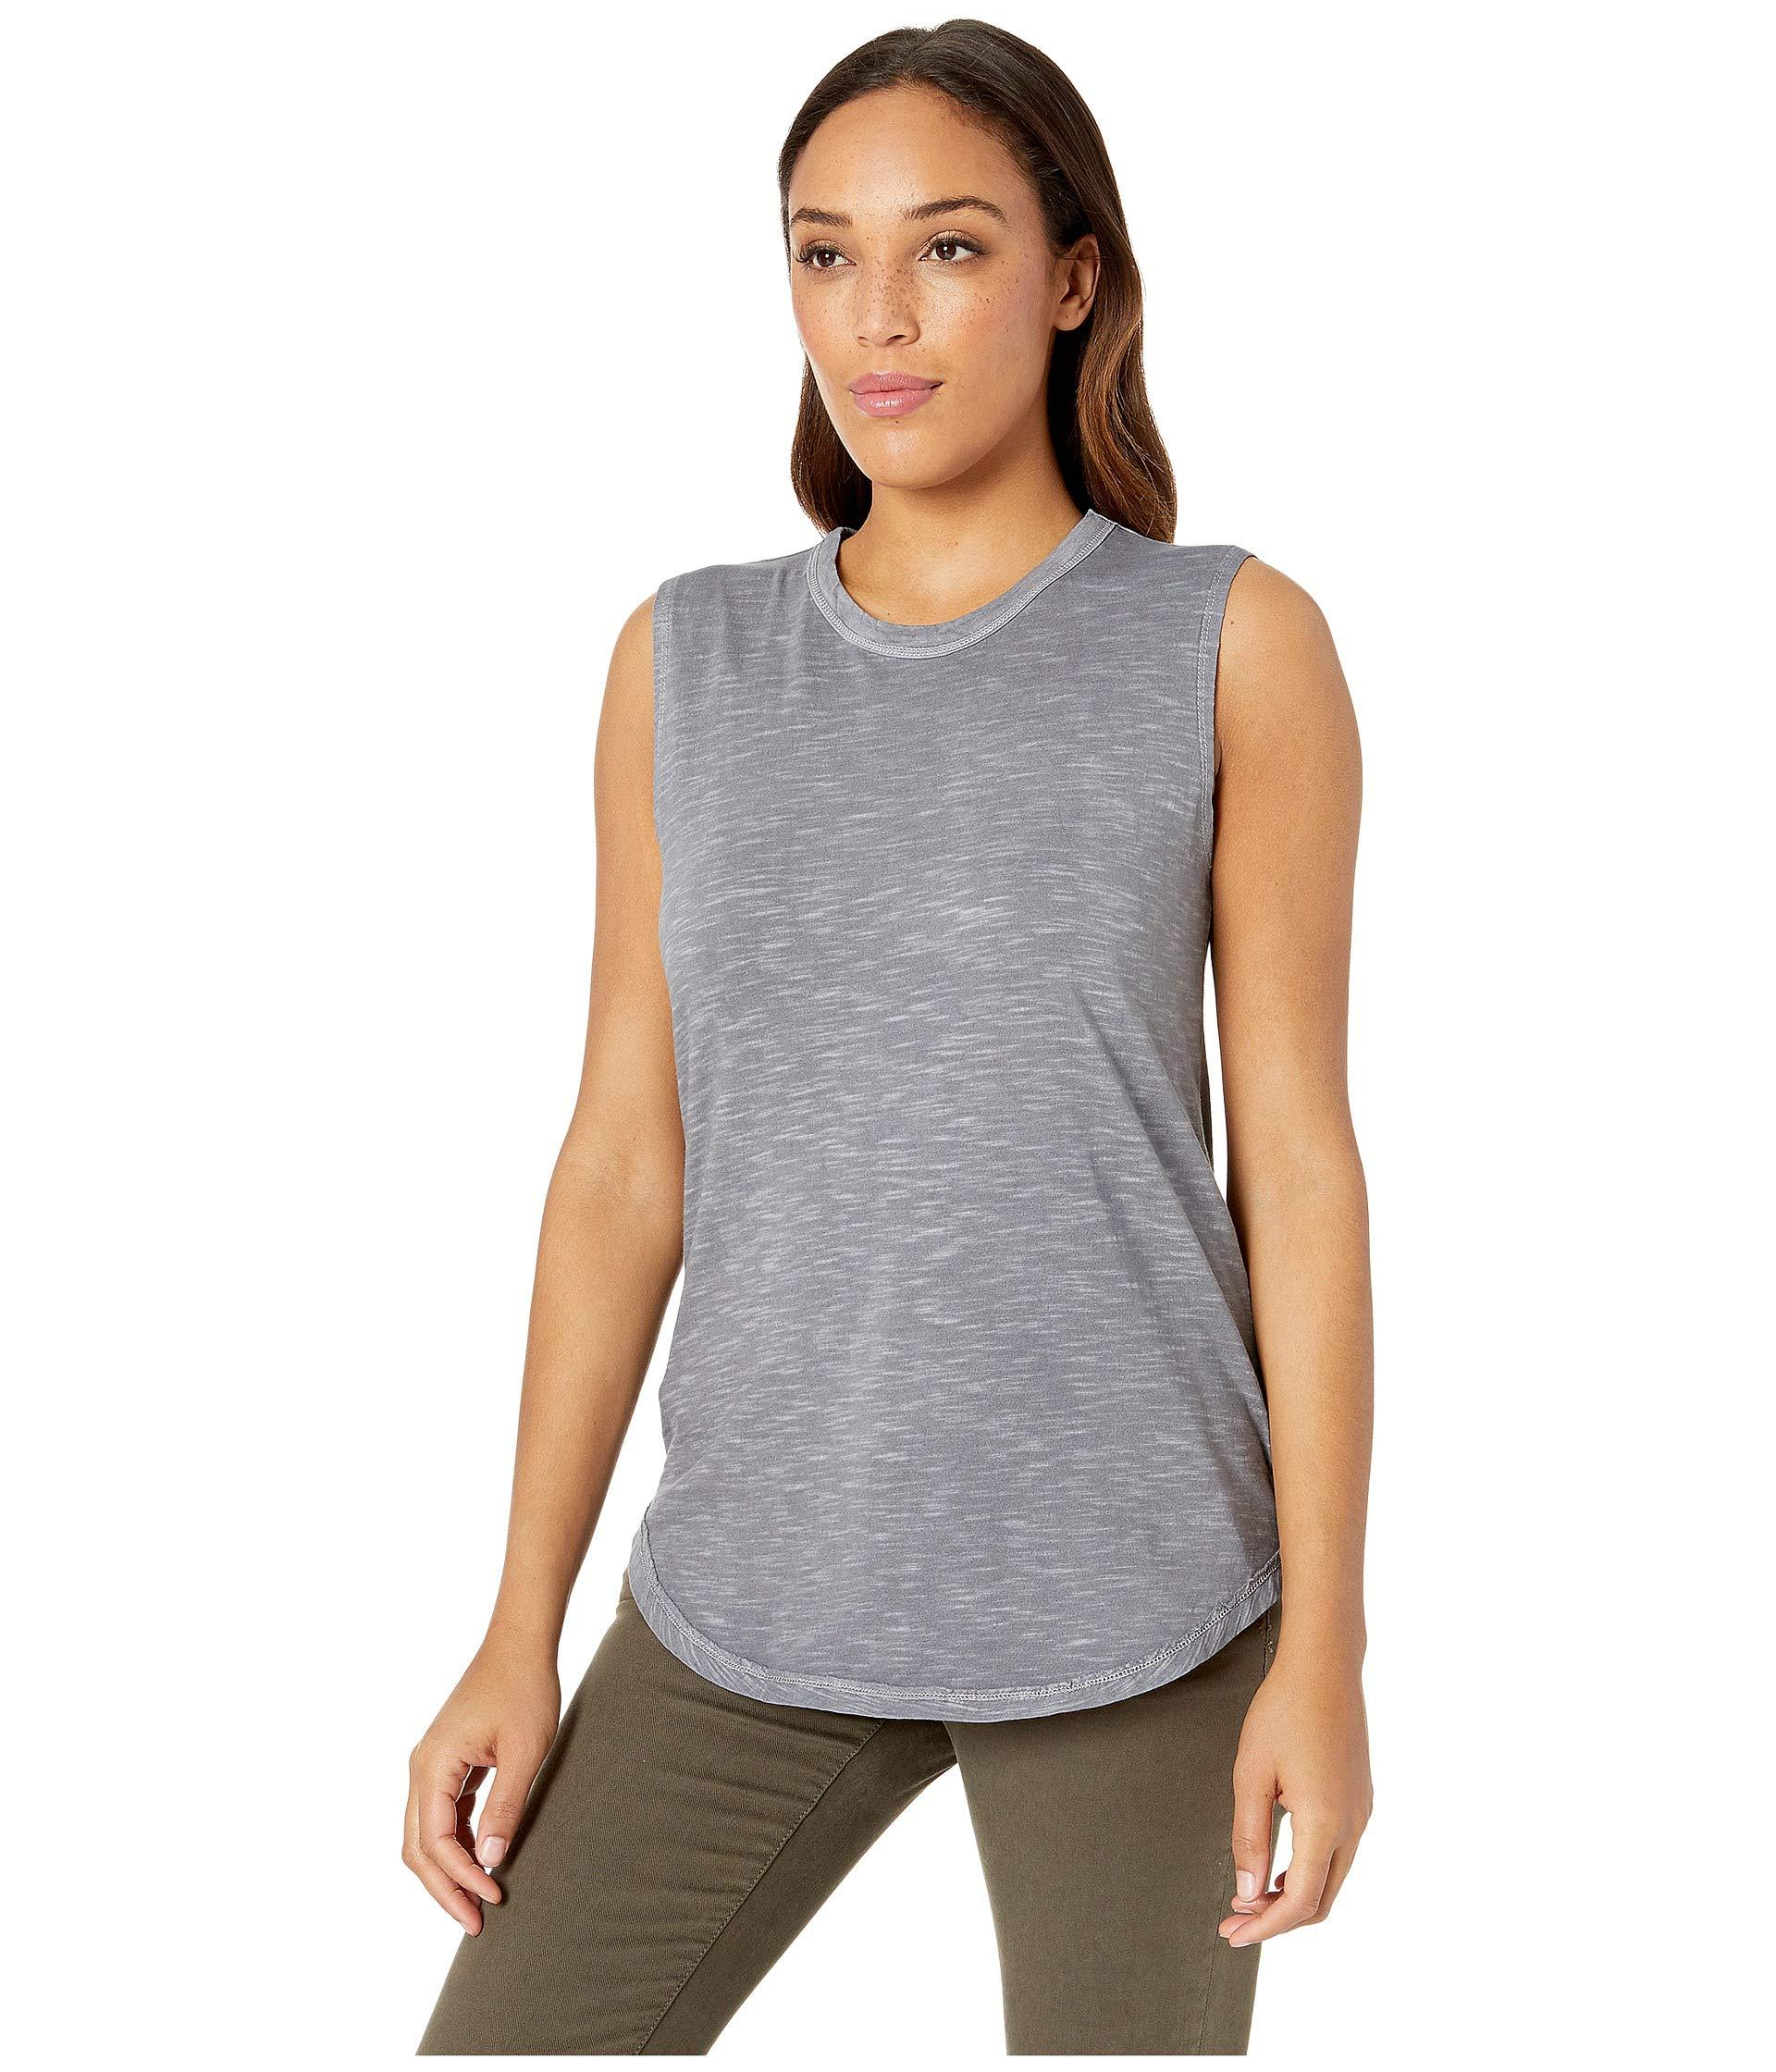 f8cc4f7a837ccd Lyst - Alternative Apparel Washed Slub Inside Out Sleeveless Tee in Gray